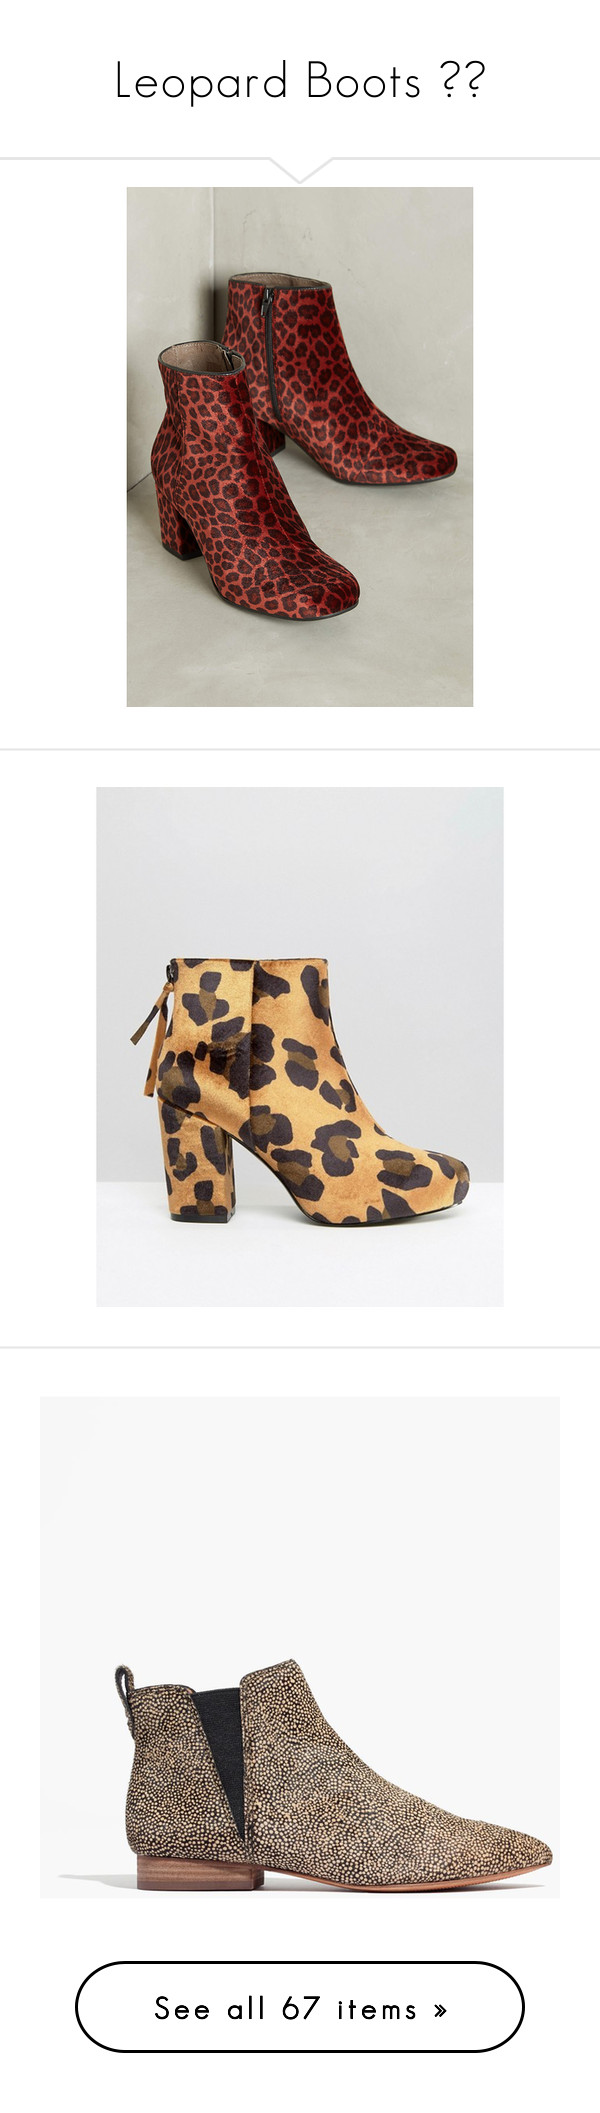 """""""Leopard Boots 🐆👢"""" by fieldnotes ❤ liked on Polyvore featuring shoes, boots, ankle booties, novelty, block heel booties, leopard boots, block heel boots, leopard booties, velvet boots and short boots"""